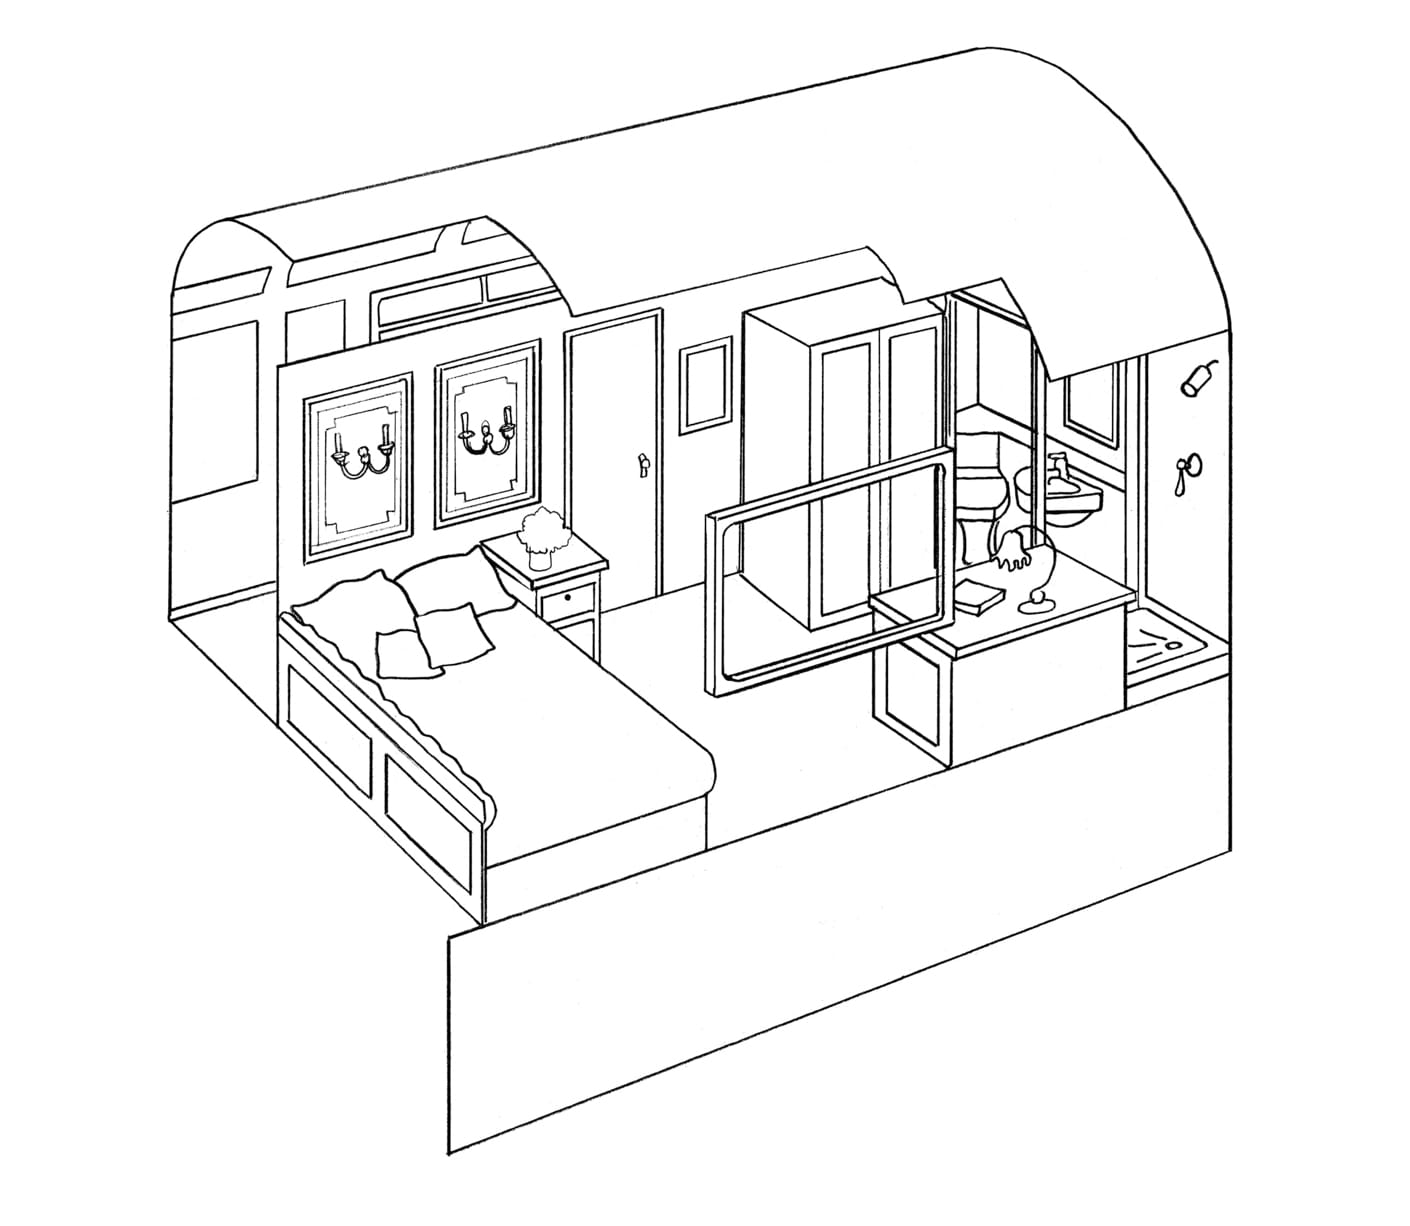 Double cabin diagram of the Belmond Royal Scotsman train